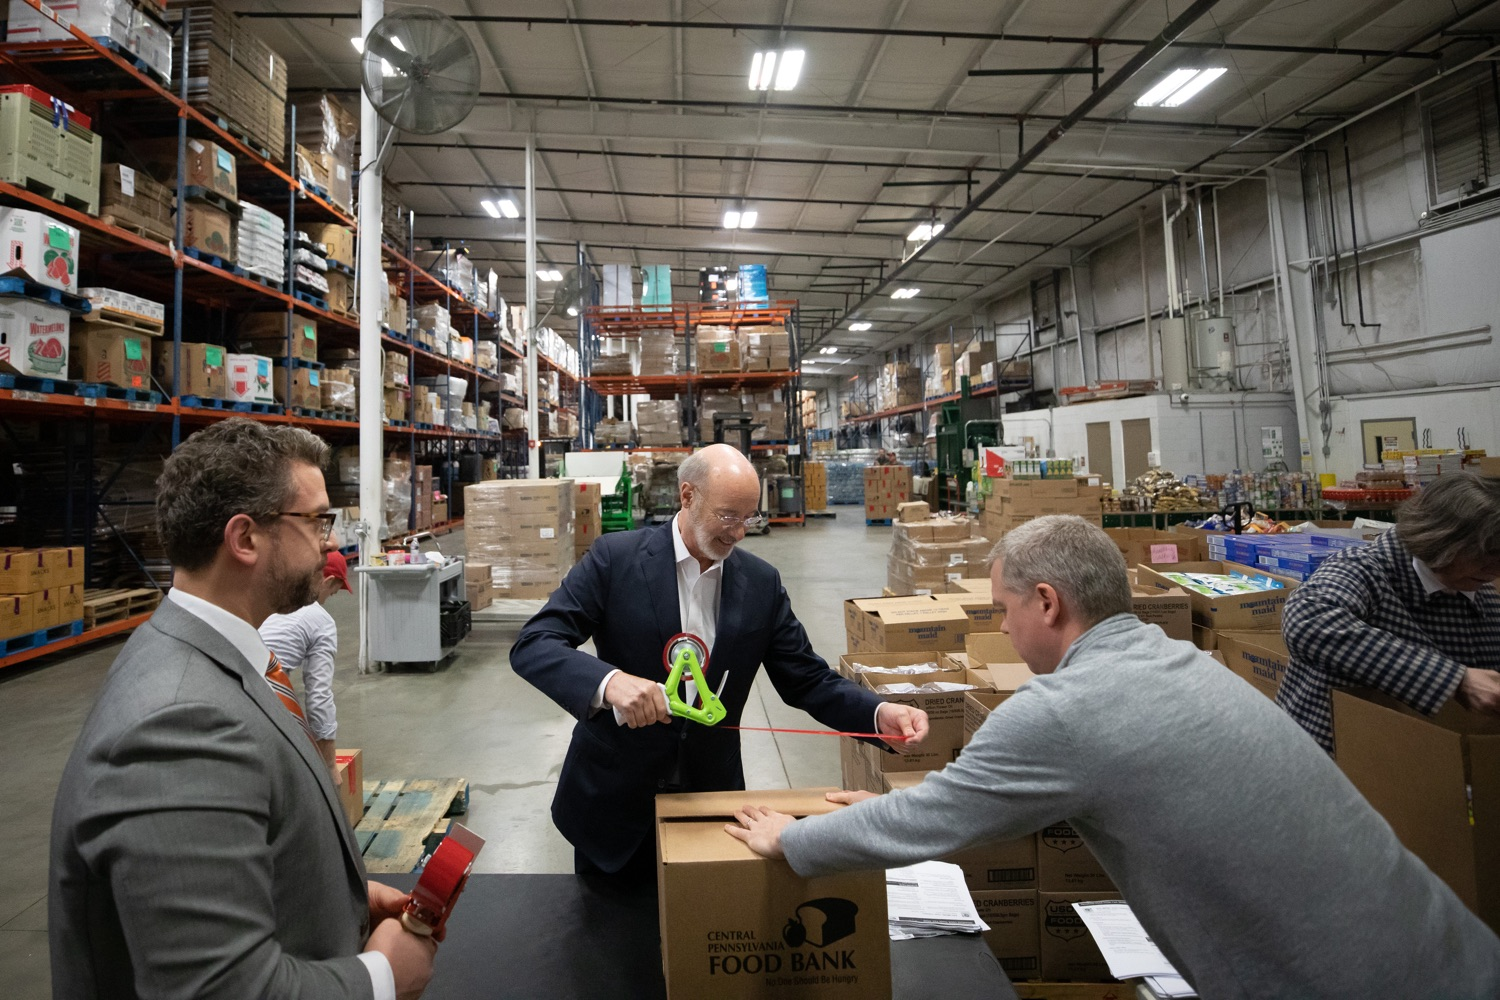 "<a href=""https://filesource.wostreaming.net/commonwealthofpa/photo/17632_gov_foodbank_volunteering_dz_003.jpg"" target=""_blank"">⇣ Download Photo<br></a>Governor Tom Wolf loading boxes of food at the Central Pennsylvania Food Bank.  The governor and first lady visit the Central Pennsylvania Food Bank in Harrisburg to participate in a volunteer project, packing boxes of food for veterans and their families. Ahead of Thanksgiving and the holiday season, Governor Tom Wolf and First Lady Frances Wolf are reminding Pennsylvanians of the importance of helping each other. Harrisburg, PA  Tuesday November 26, 2019"